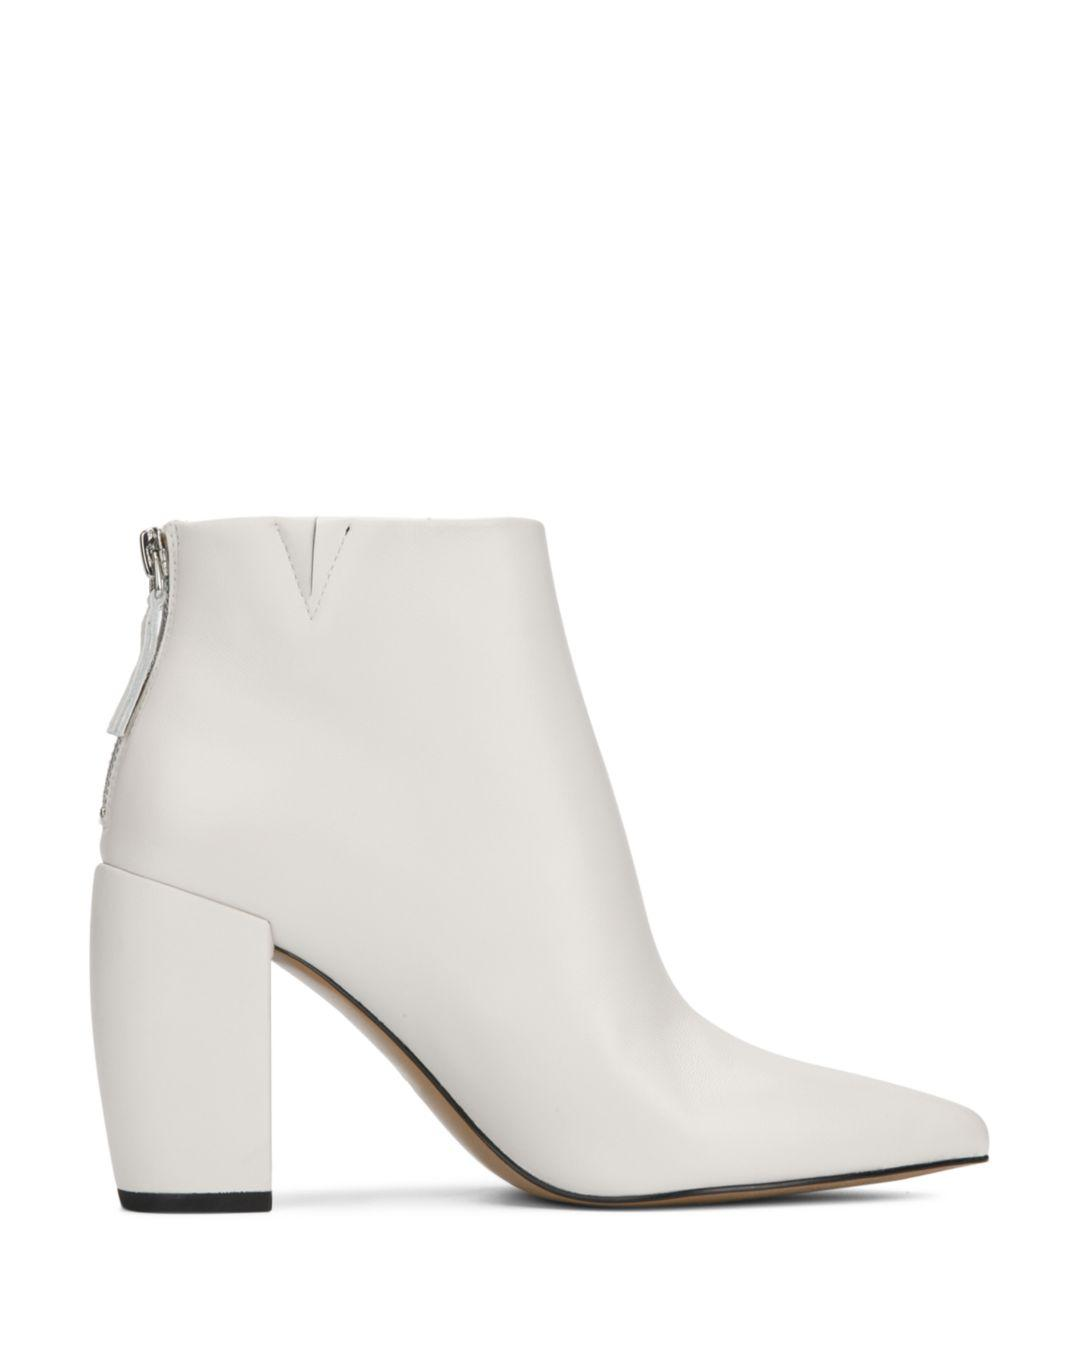 07cb5e1d124 Kenneth Cole Women s Alora High Block-heel Booties in White - Lyst